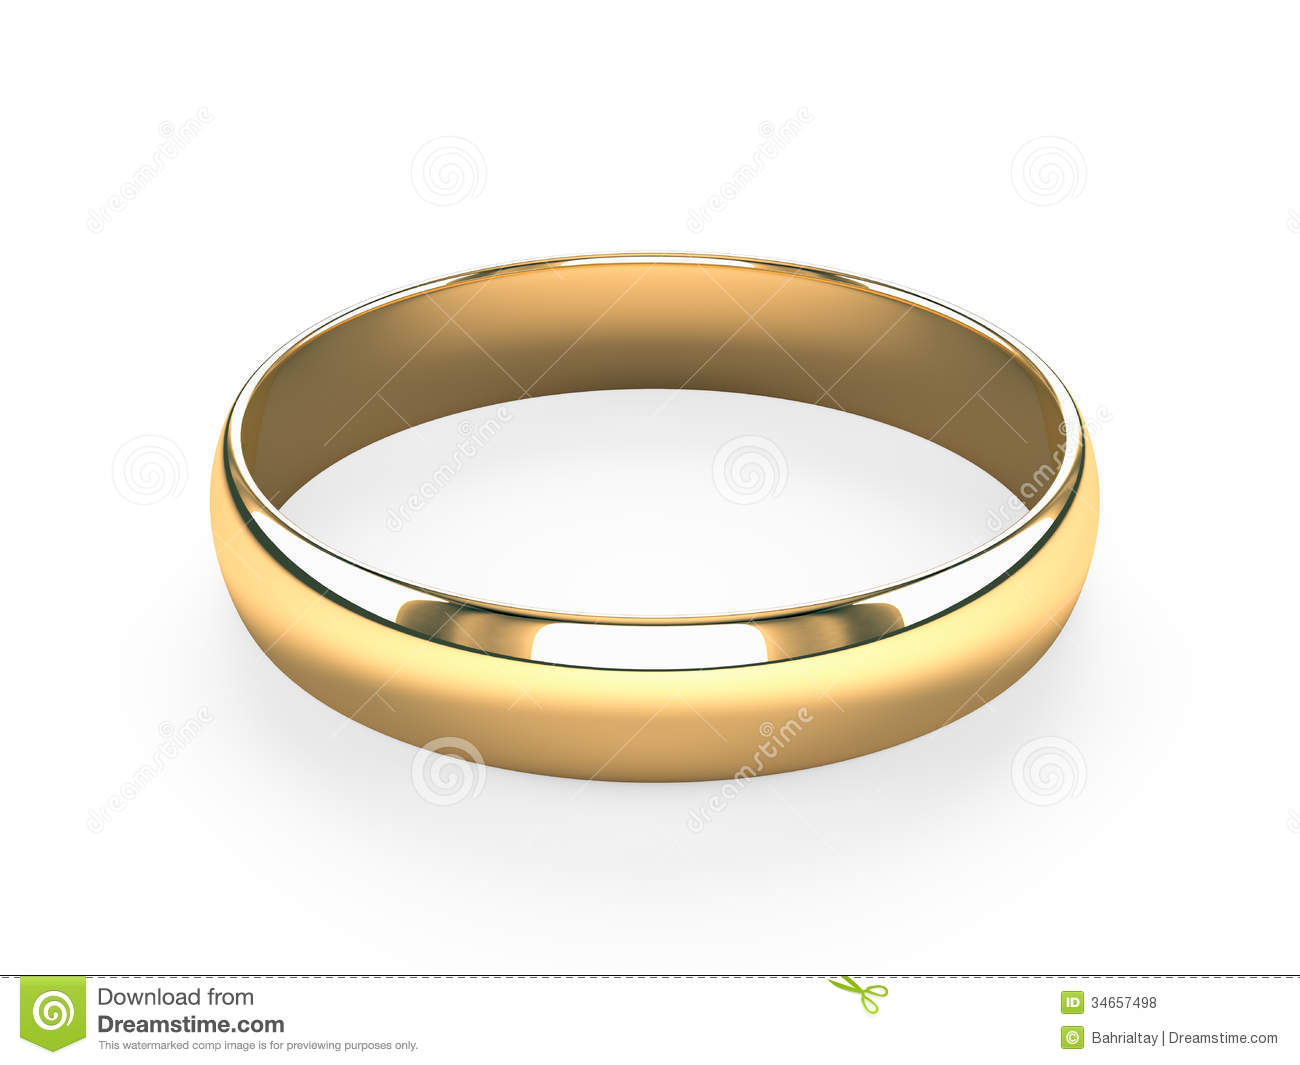 Royalty Free Stock Photos: Wedding ring. Image: 34657498 White Heart Outline No Background